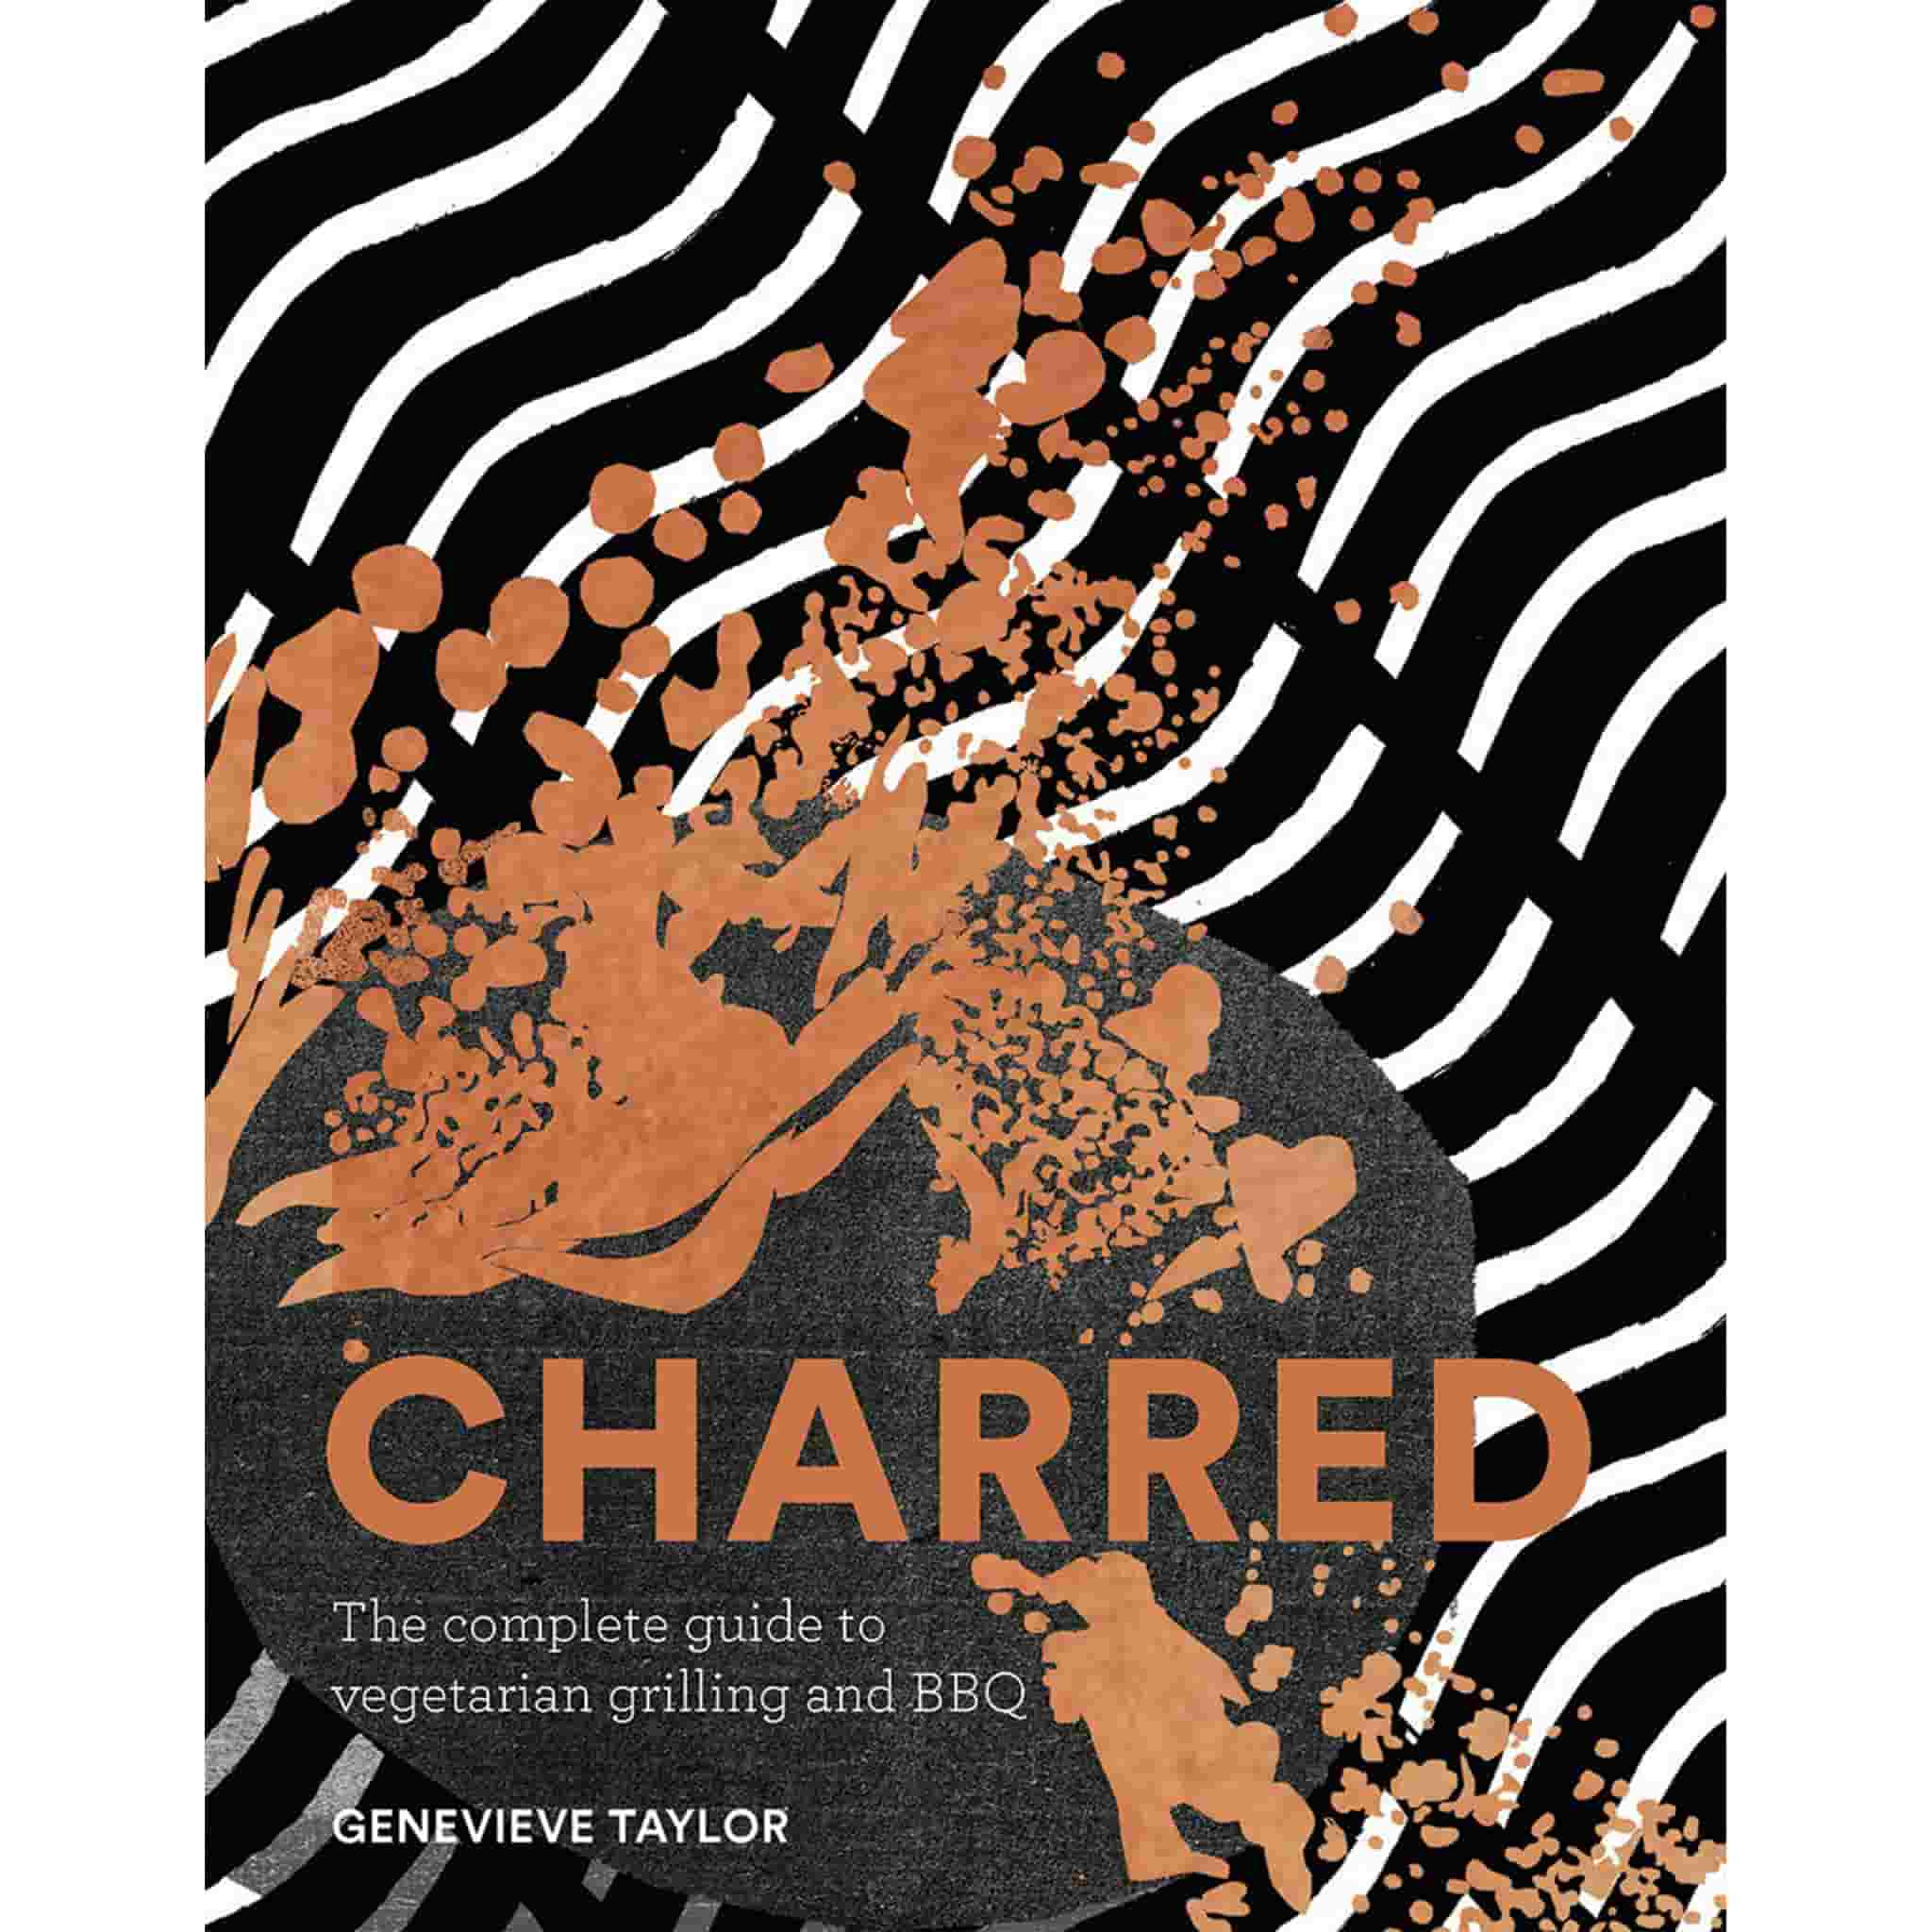 Charred: The complete guide to vegetarian grilling and barbecue